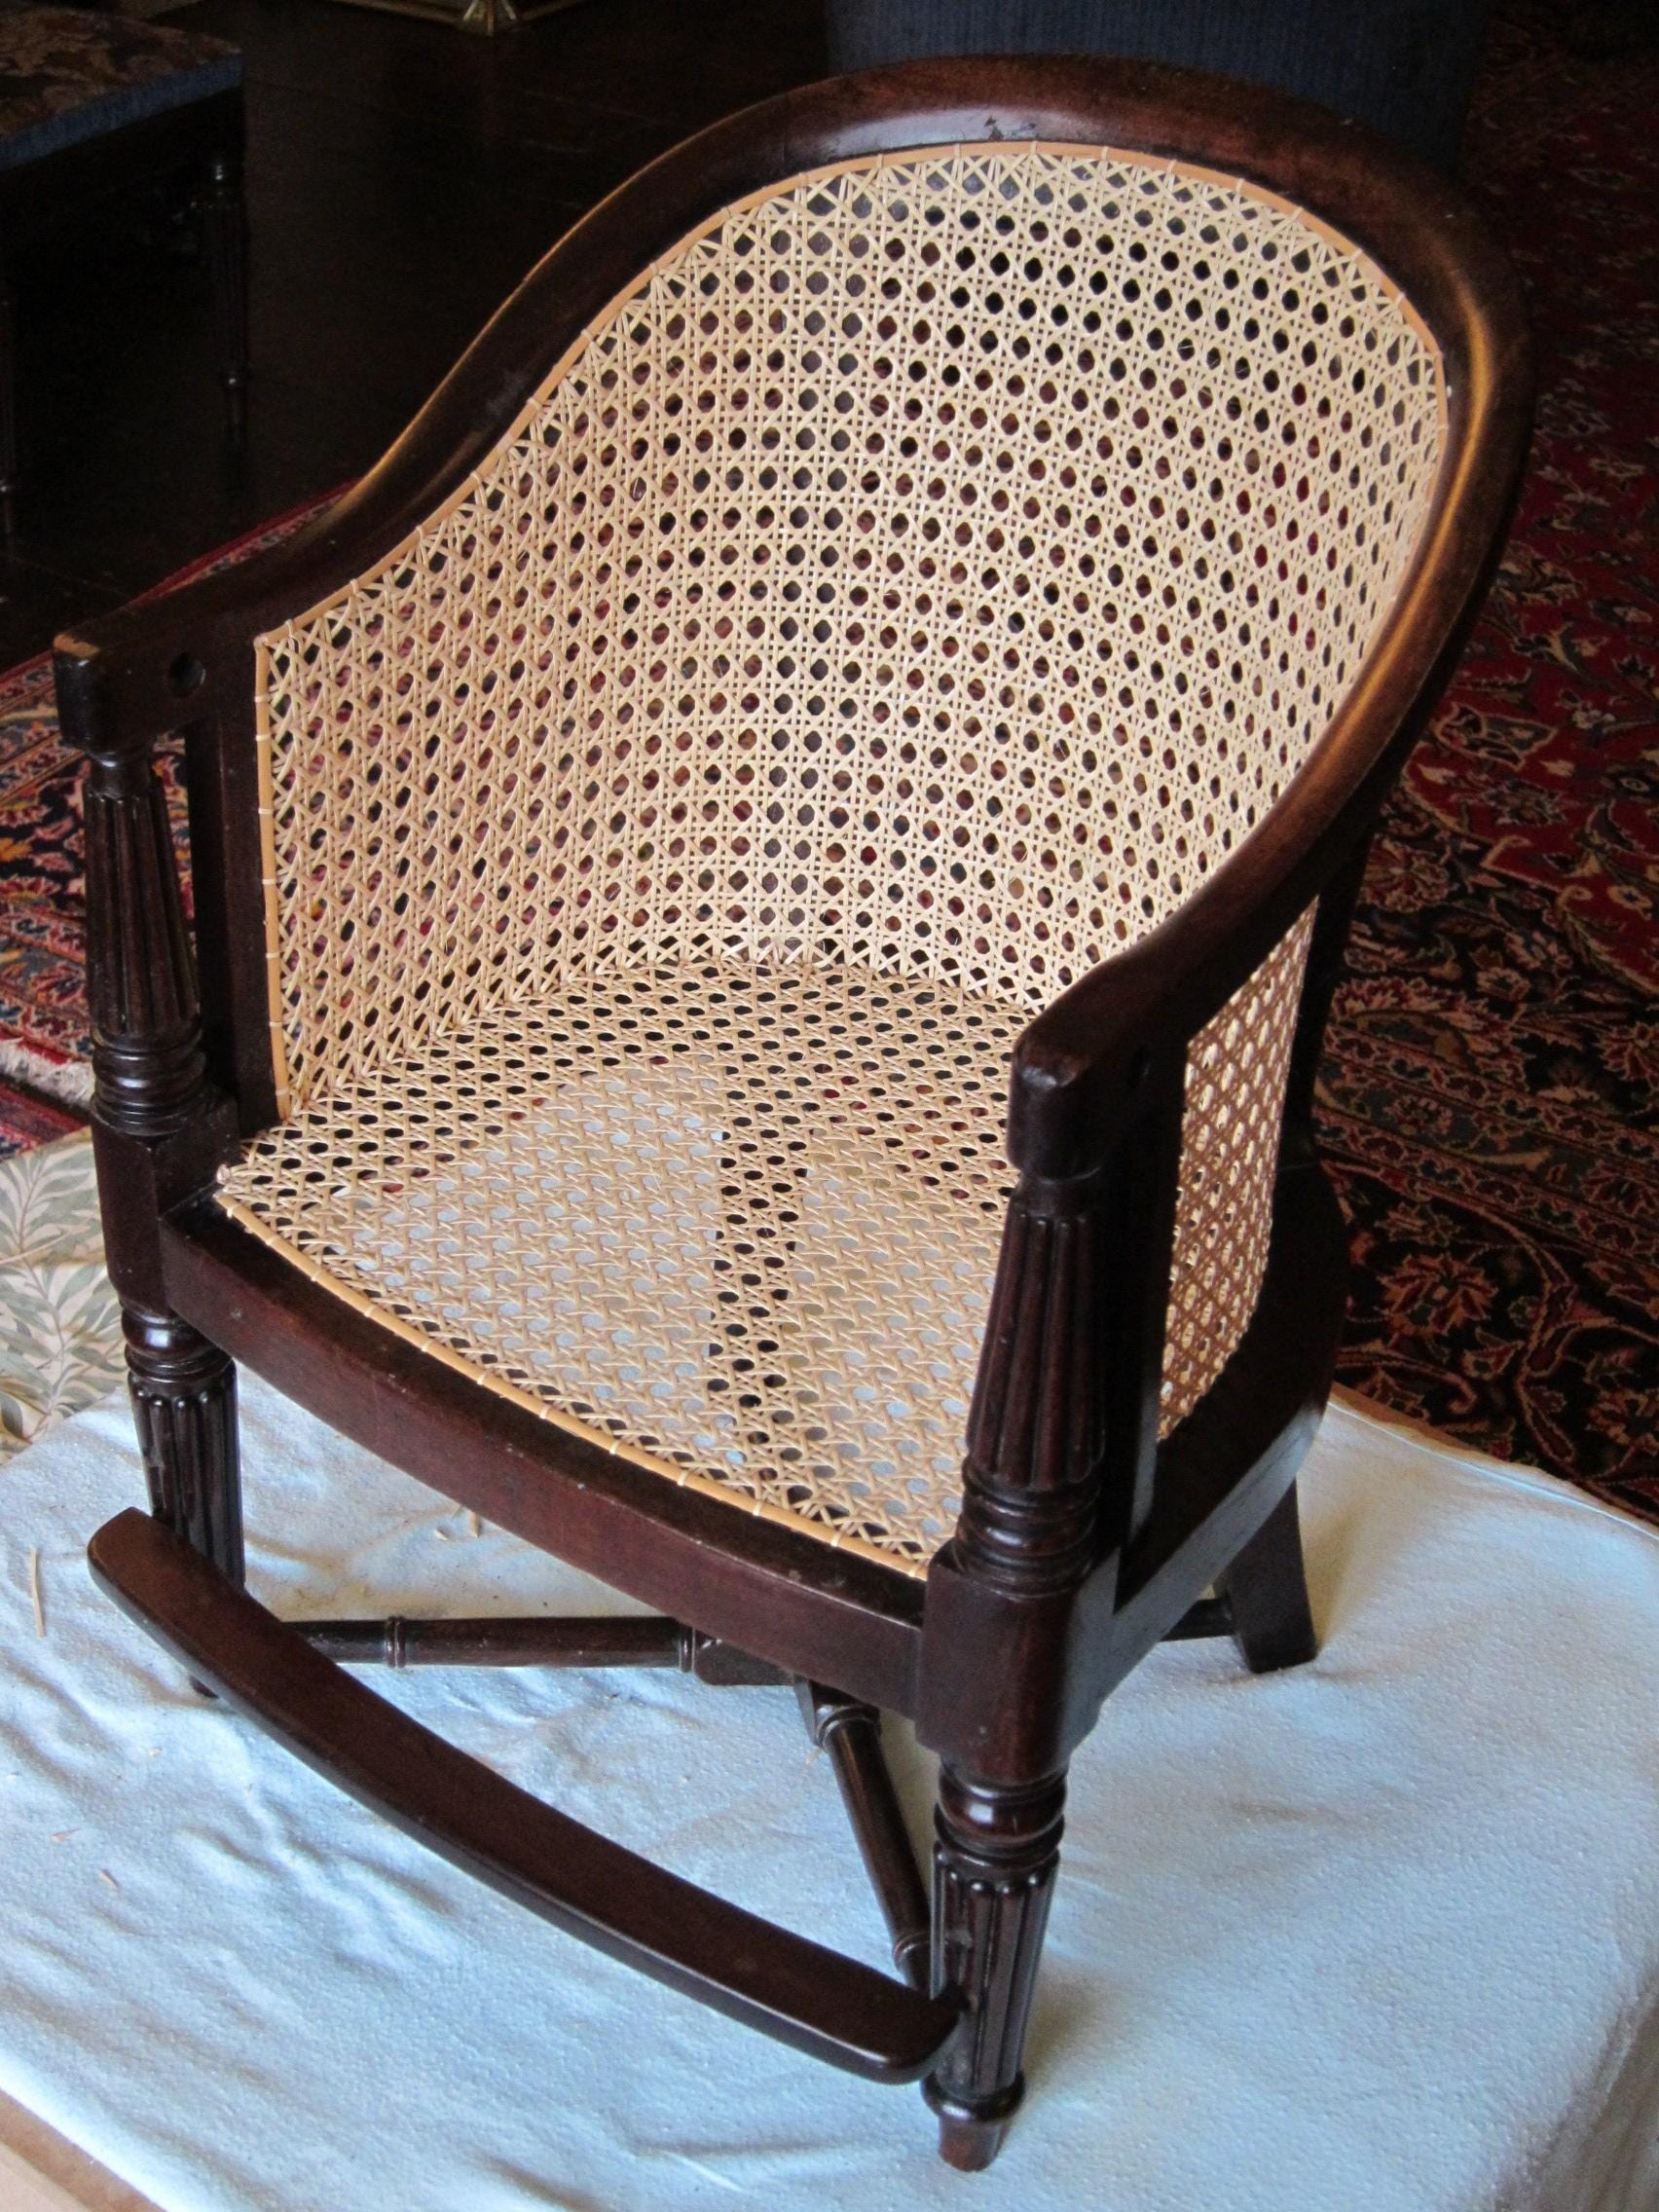 Etonnant Childu0027s Caned Chair Used By John Ruskin, Showing The Typical 6 Way Pattern  On Both The Seat And Back Panels. Chair Re Caned By The Author.